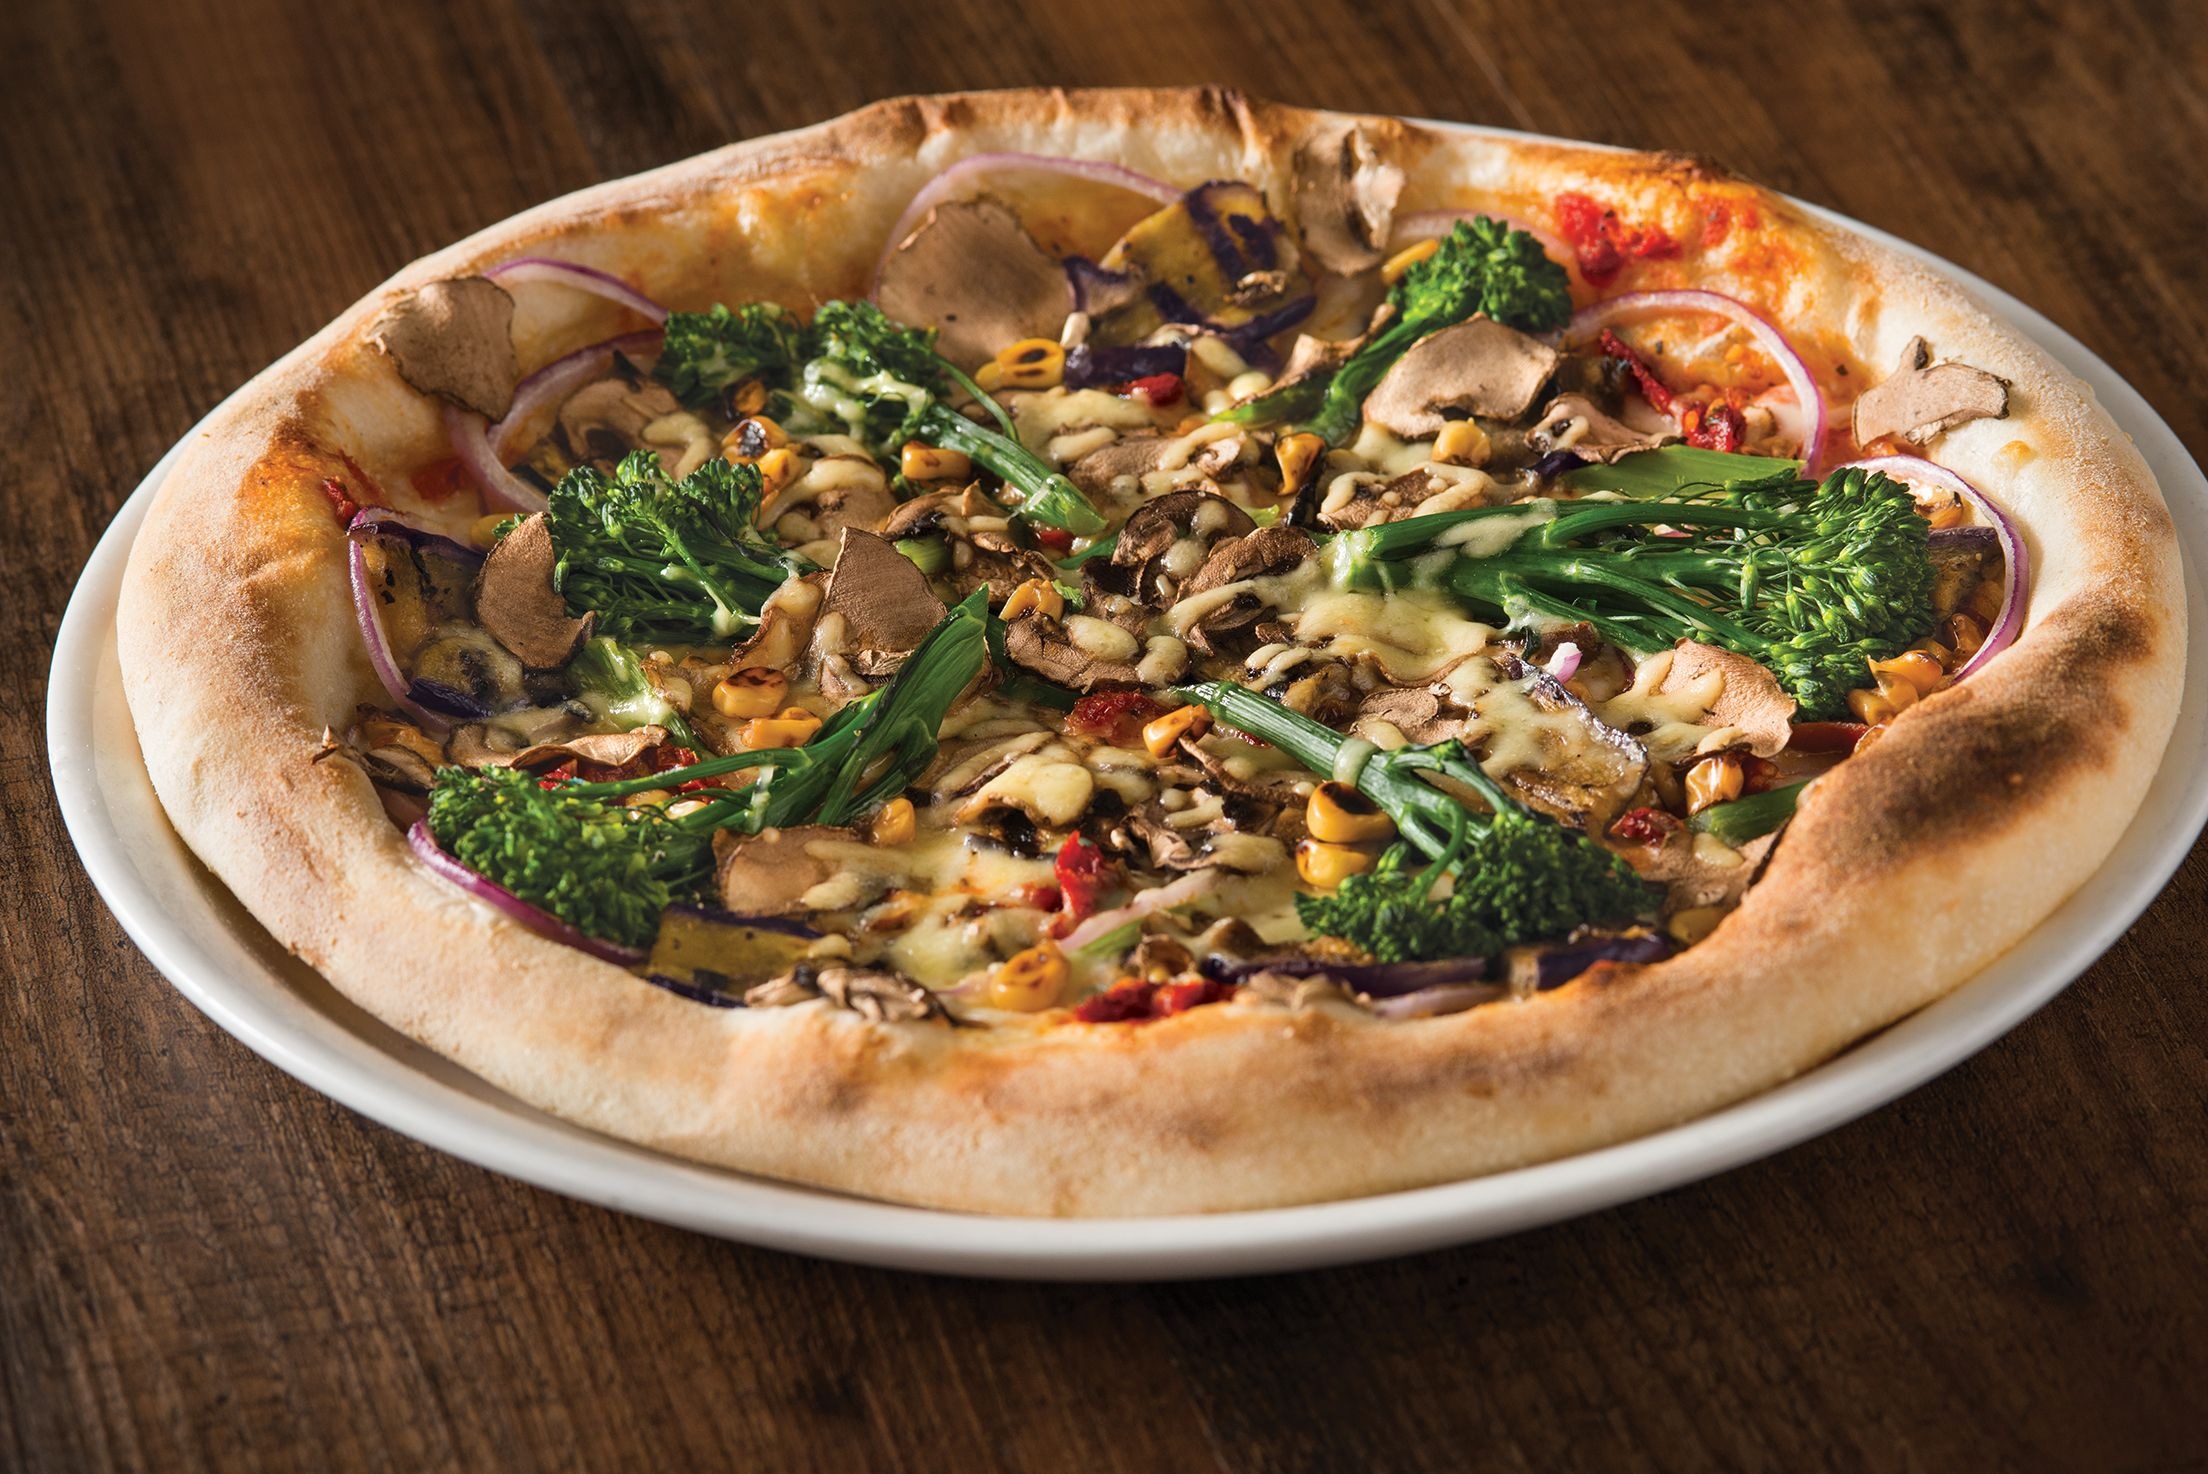 California Pizza Kitchen Pepperoni Pizza California Veggie Pizza On Its New Handtossed Dough  Cpk